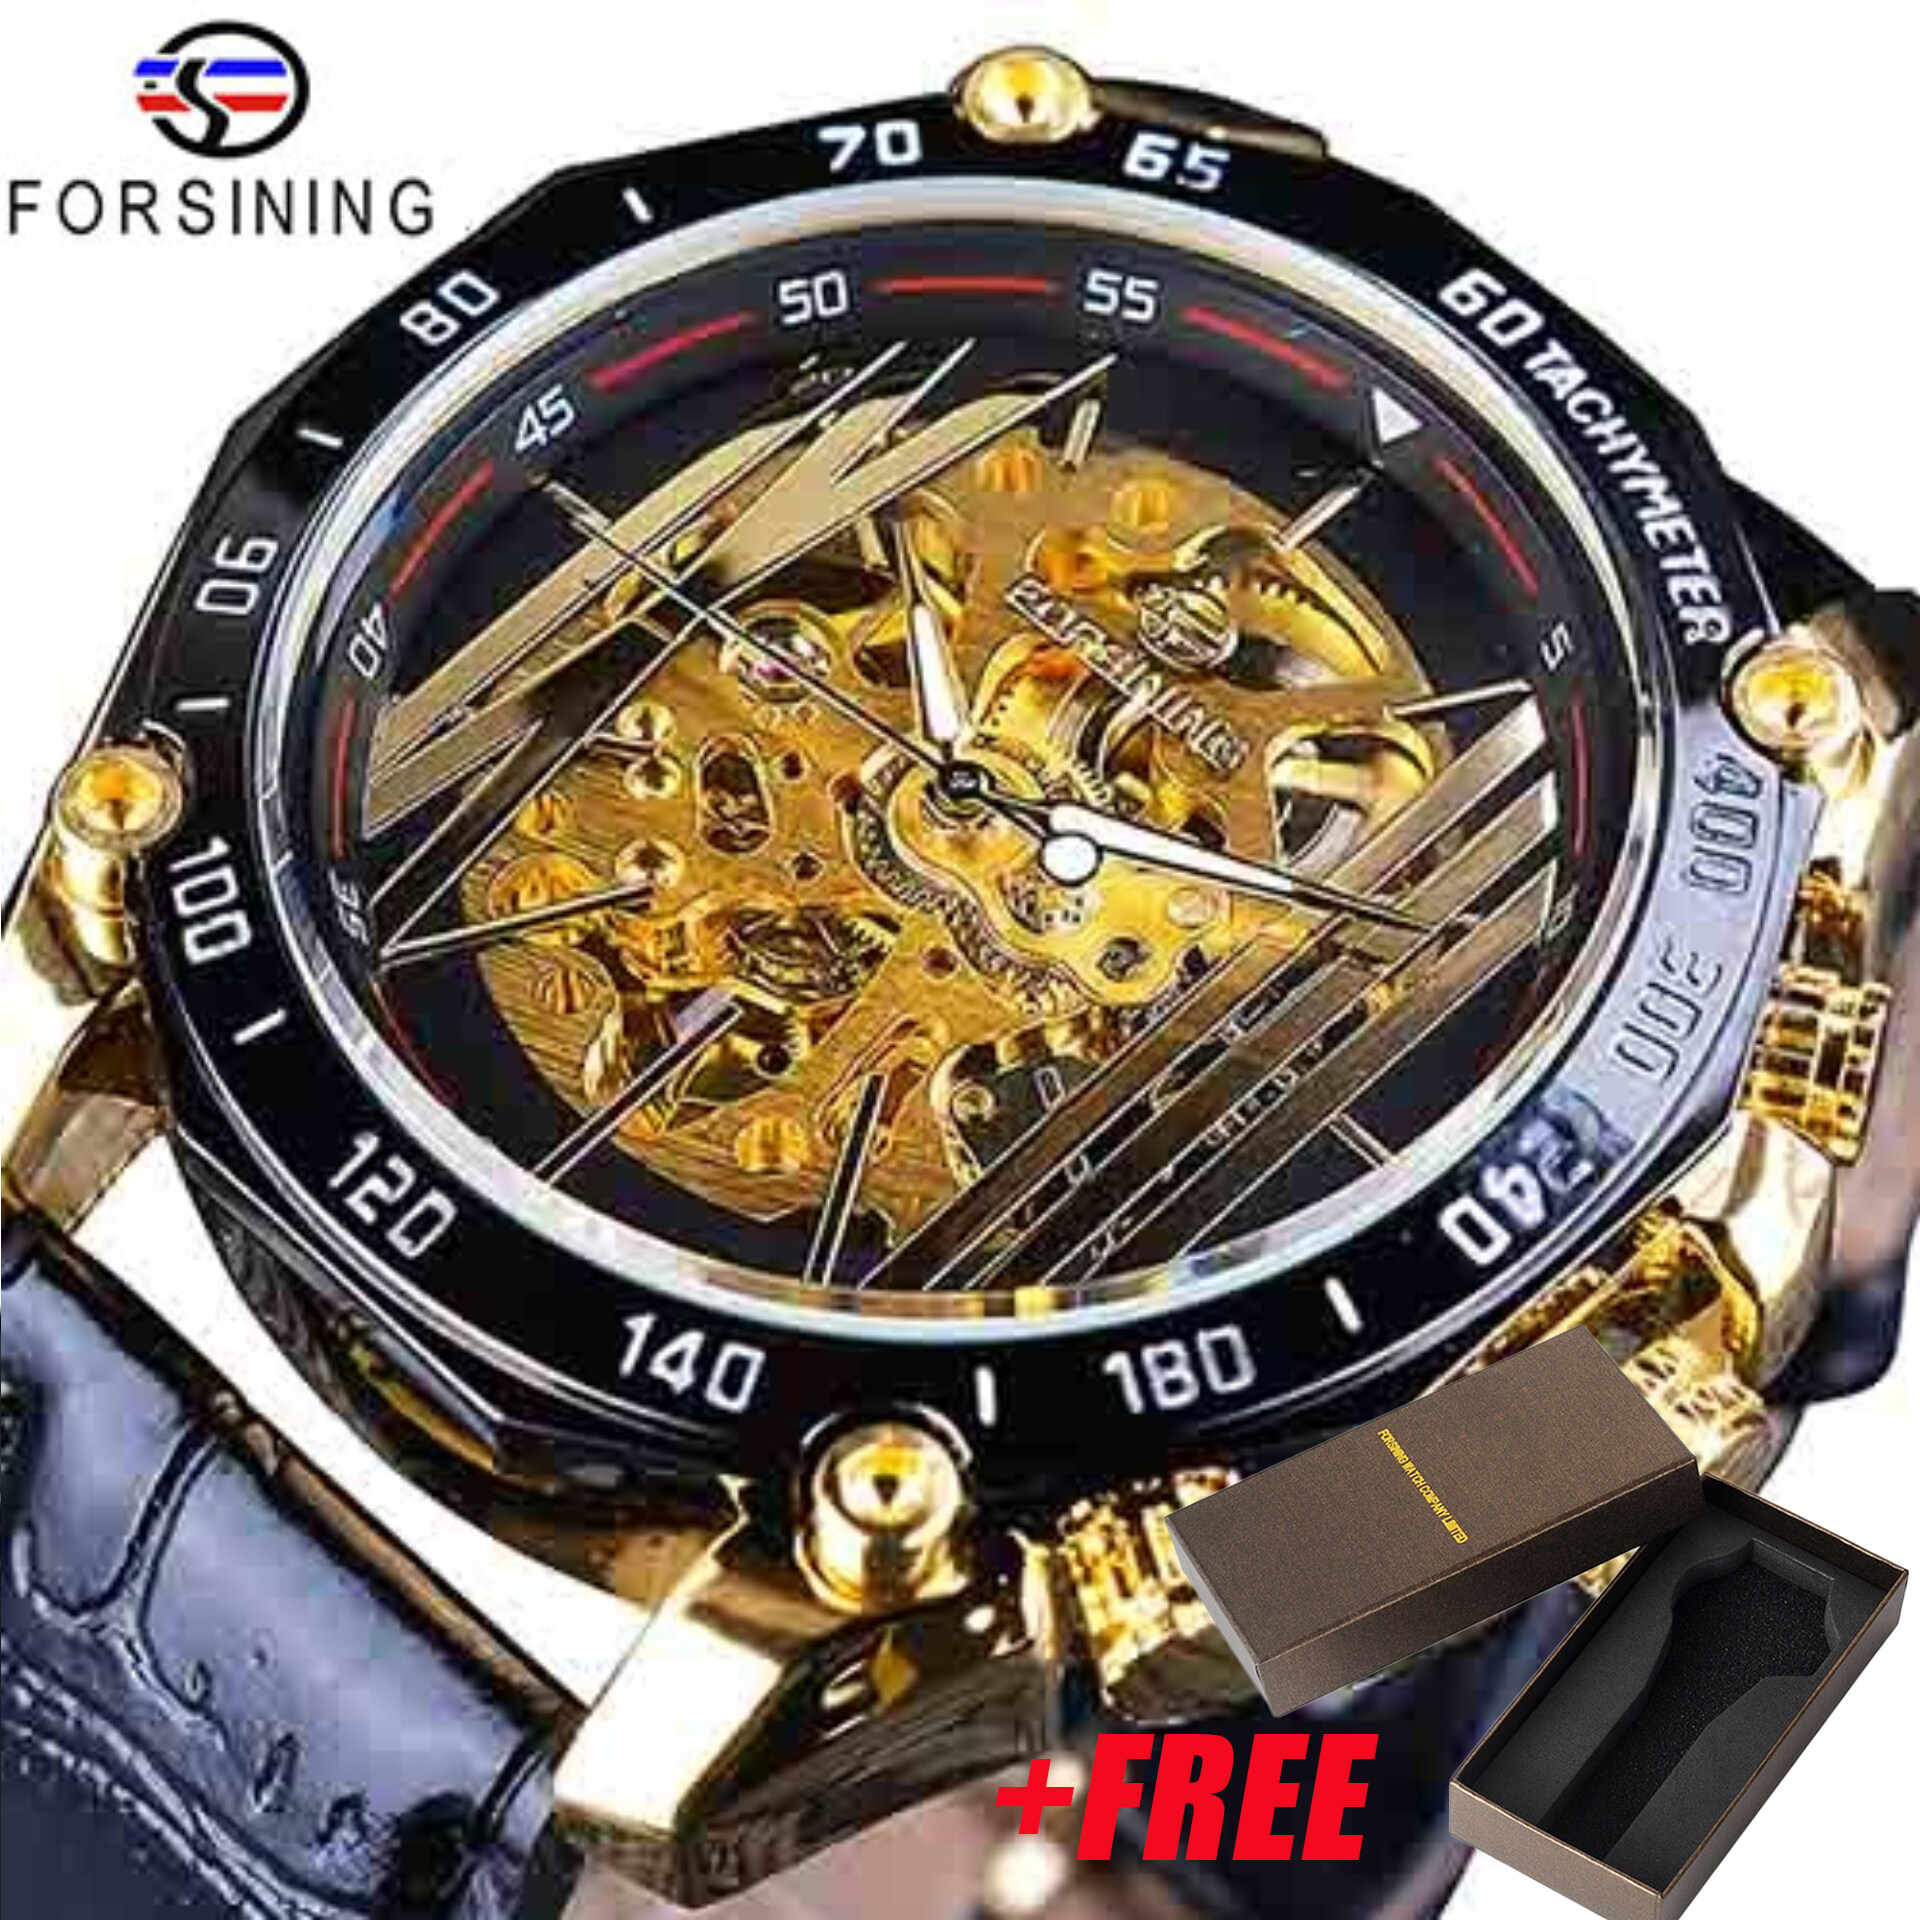 Forsining Big Dial Steampunk Design Luxury Golden Movement Watch For Men Creative Gear Openwork Watches Automatic Mechanical Wrist Watch Malaysia